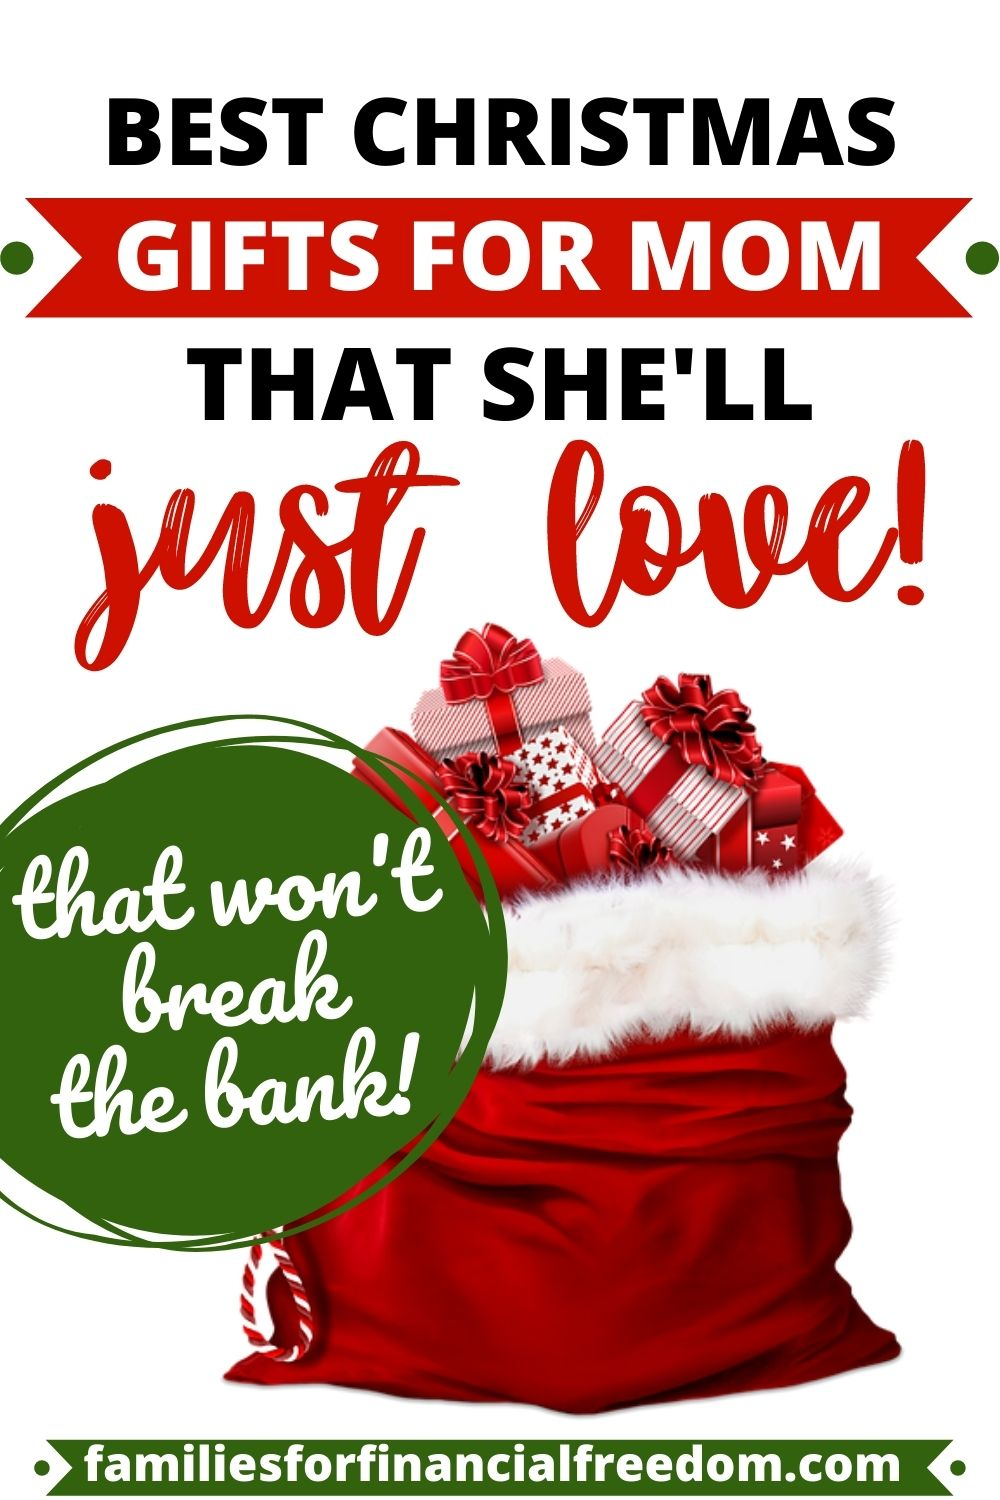 20 Perfect Christmas Gift Ideas For Mom Families For Financial Freedom